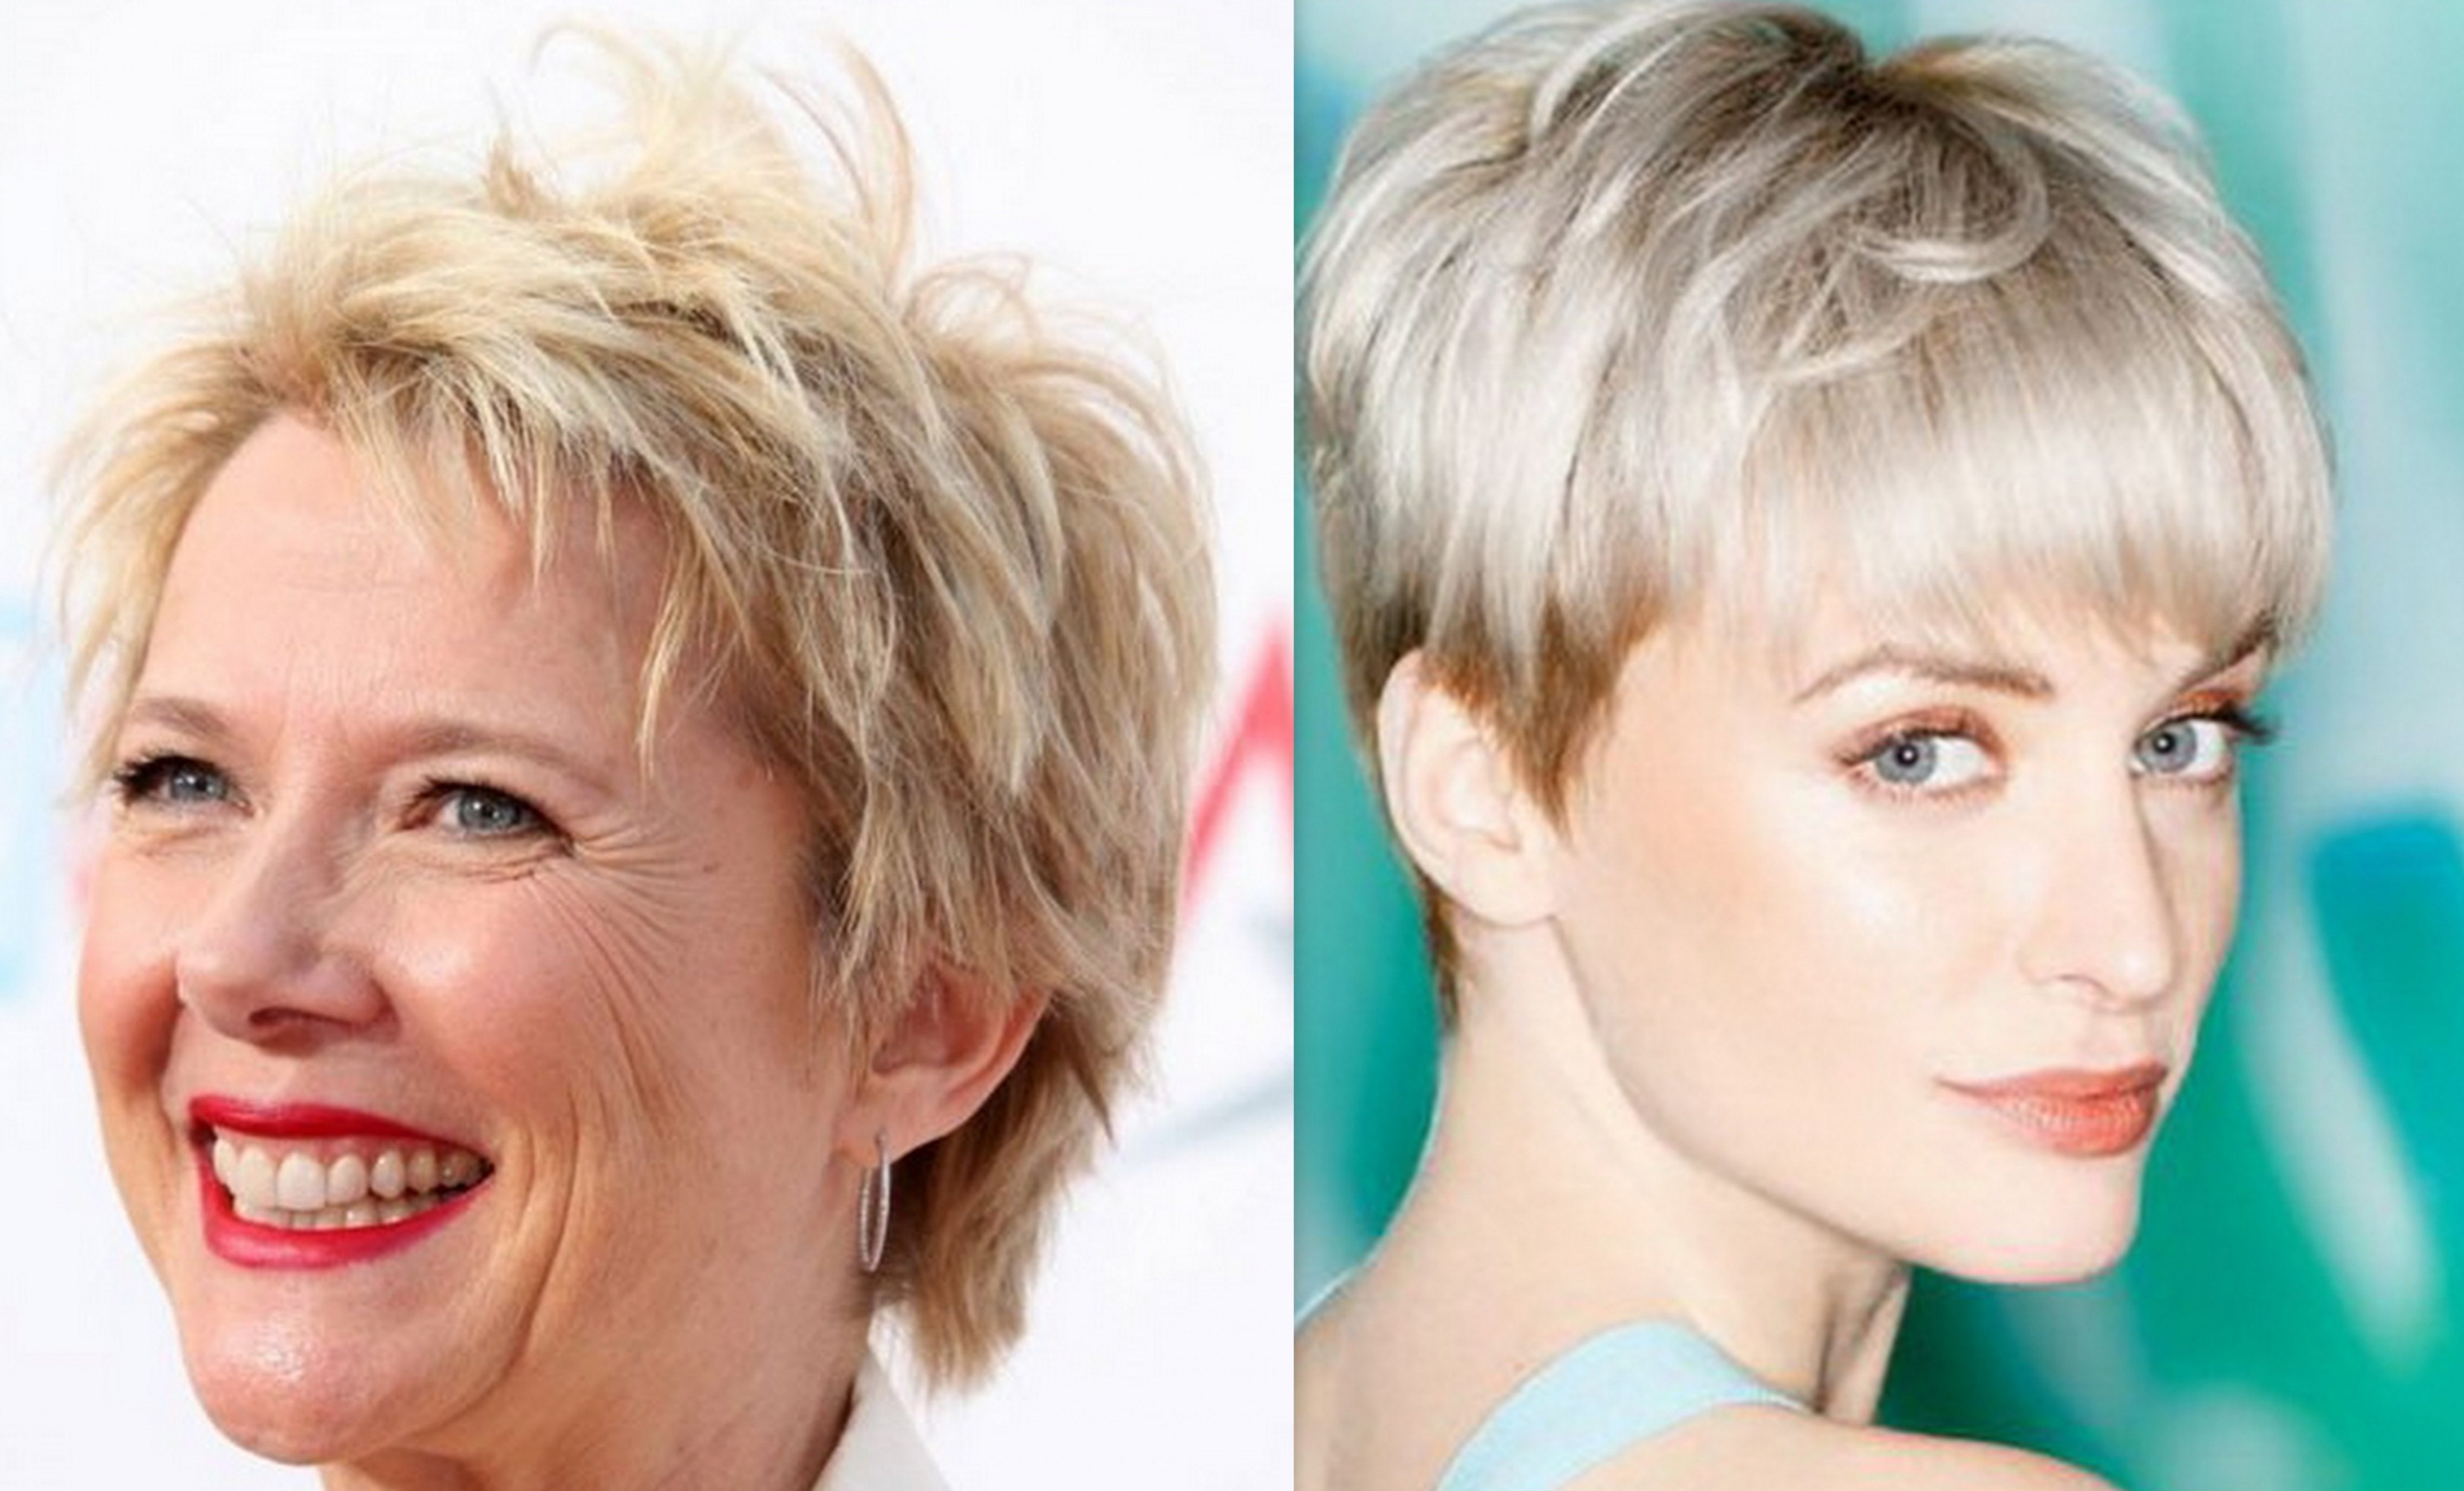 Short Hairstyles For Round Faces With Double Chins – Drive ~ Best Inside Short Hairstyles For Round Faces With Double Chin (View 21 of 25)